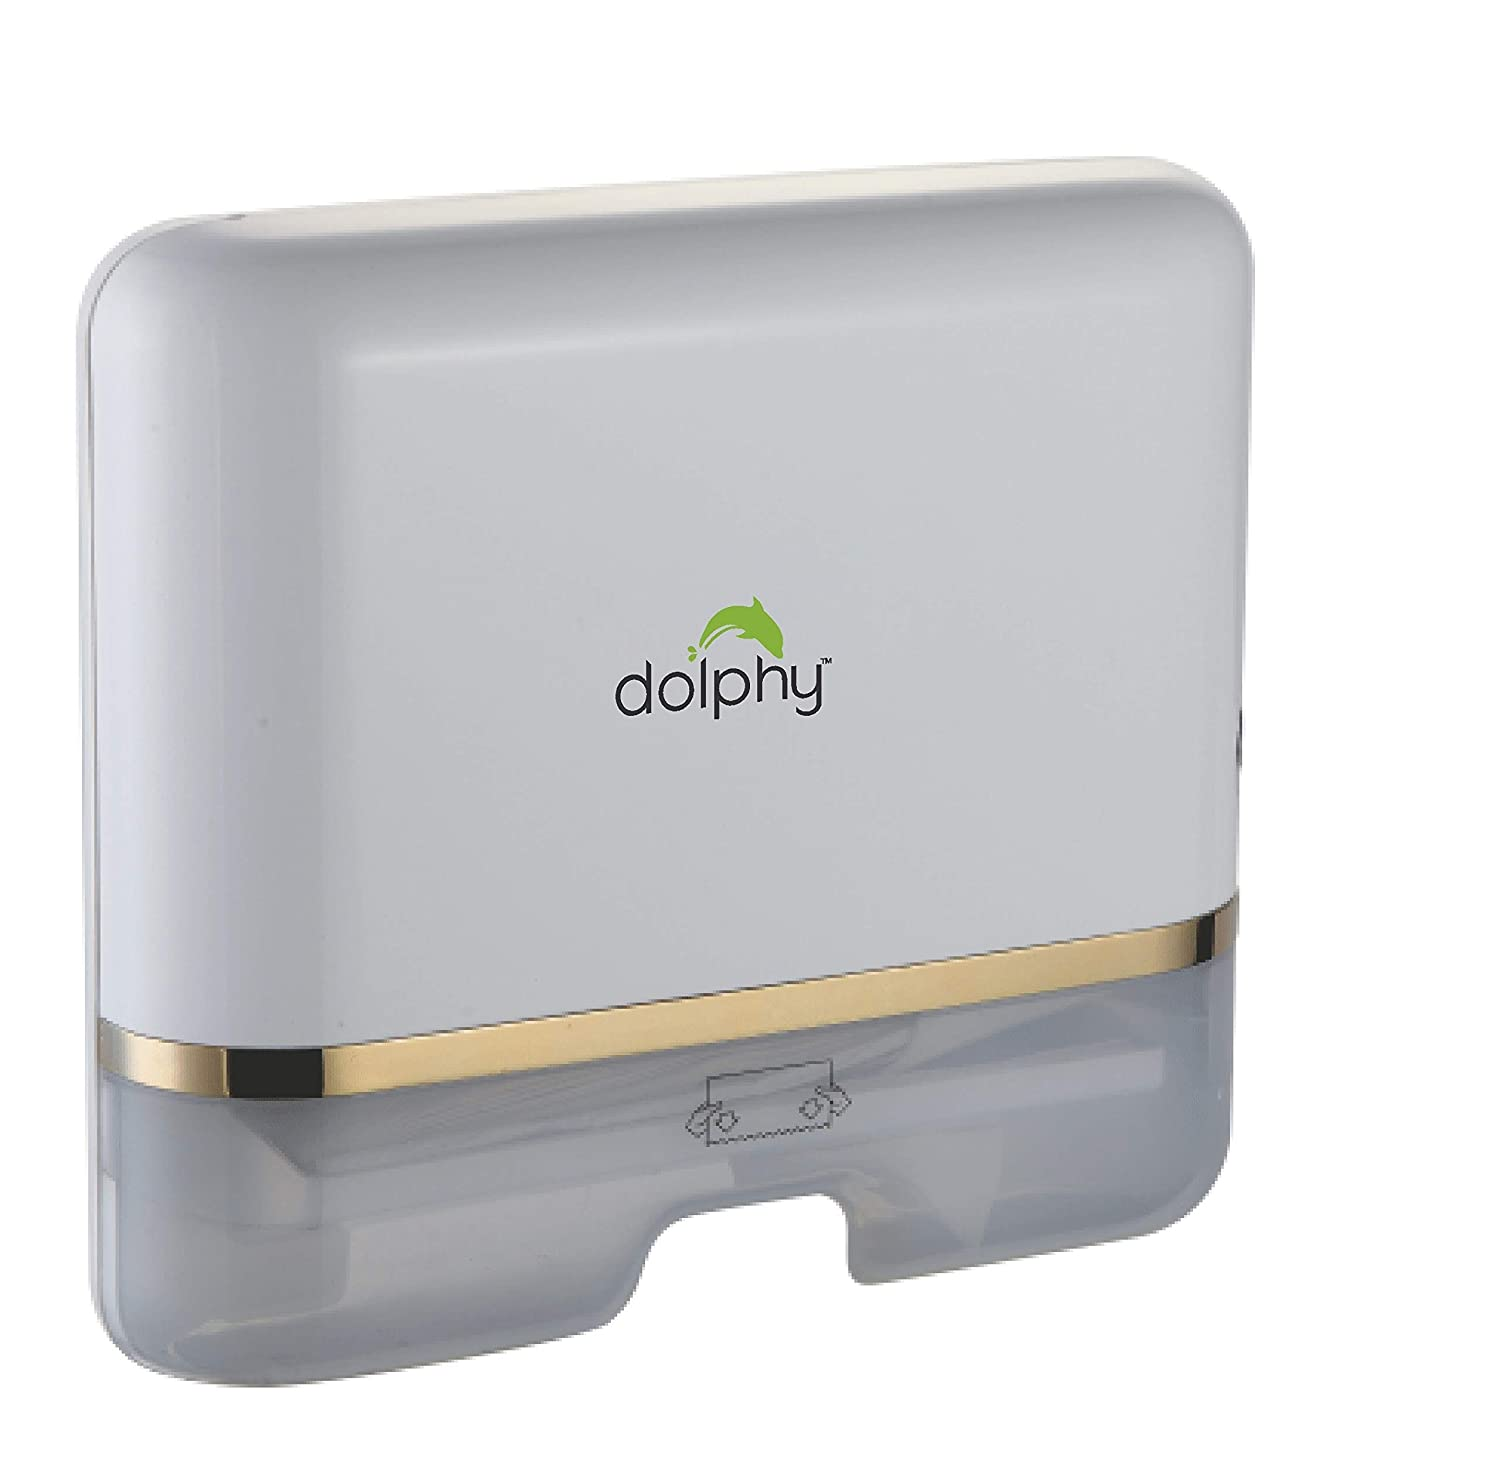 Dolphy Multifold Hand Towel Paper Dispenser – White